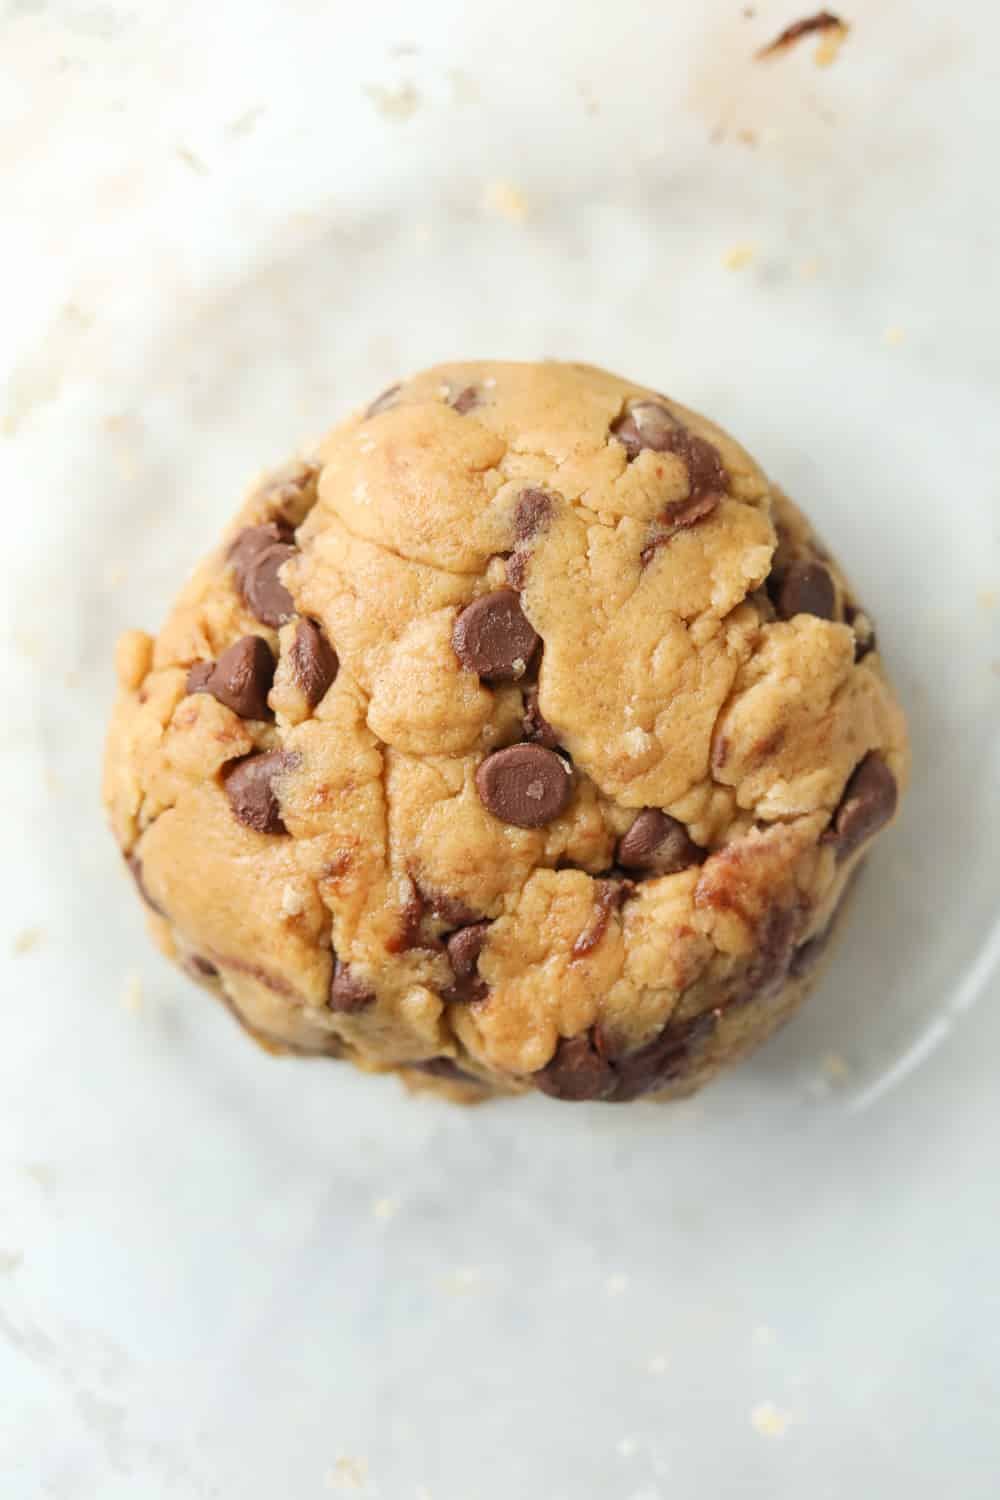 A ball of cookie dough in a clear bowl.